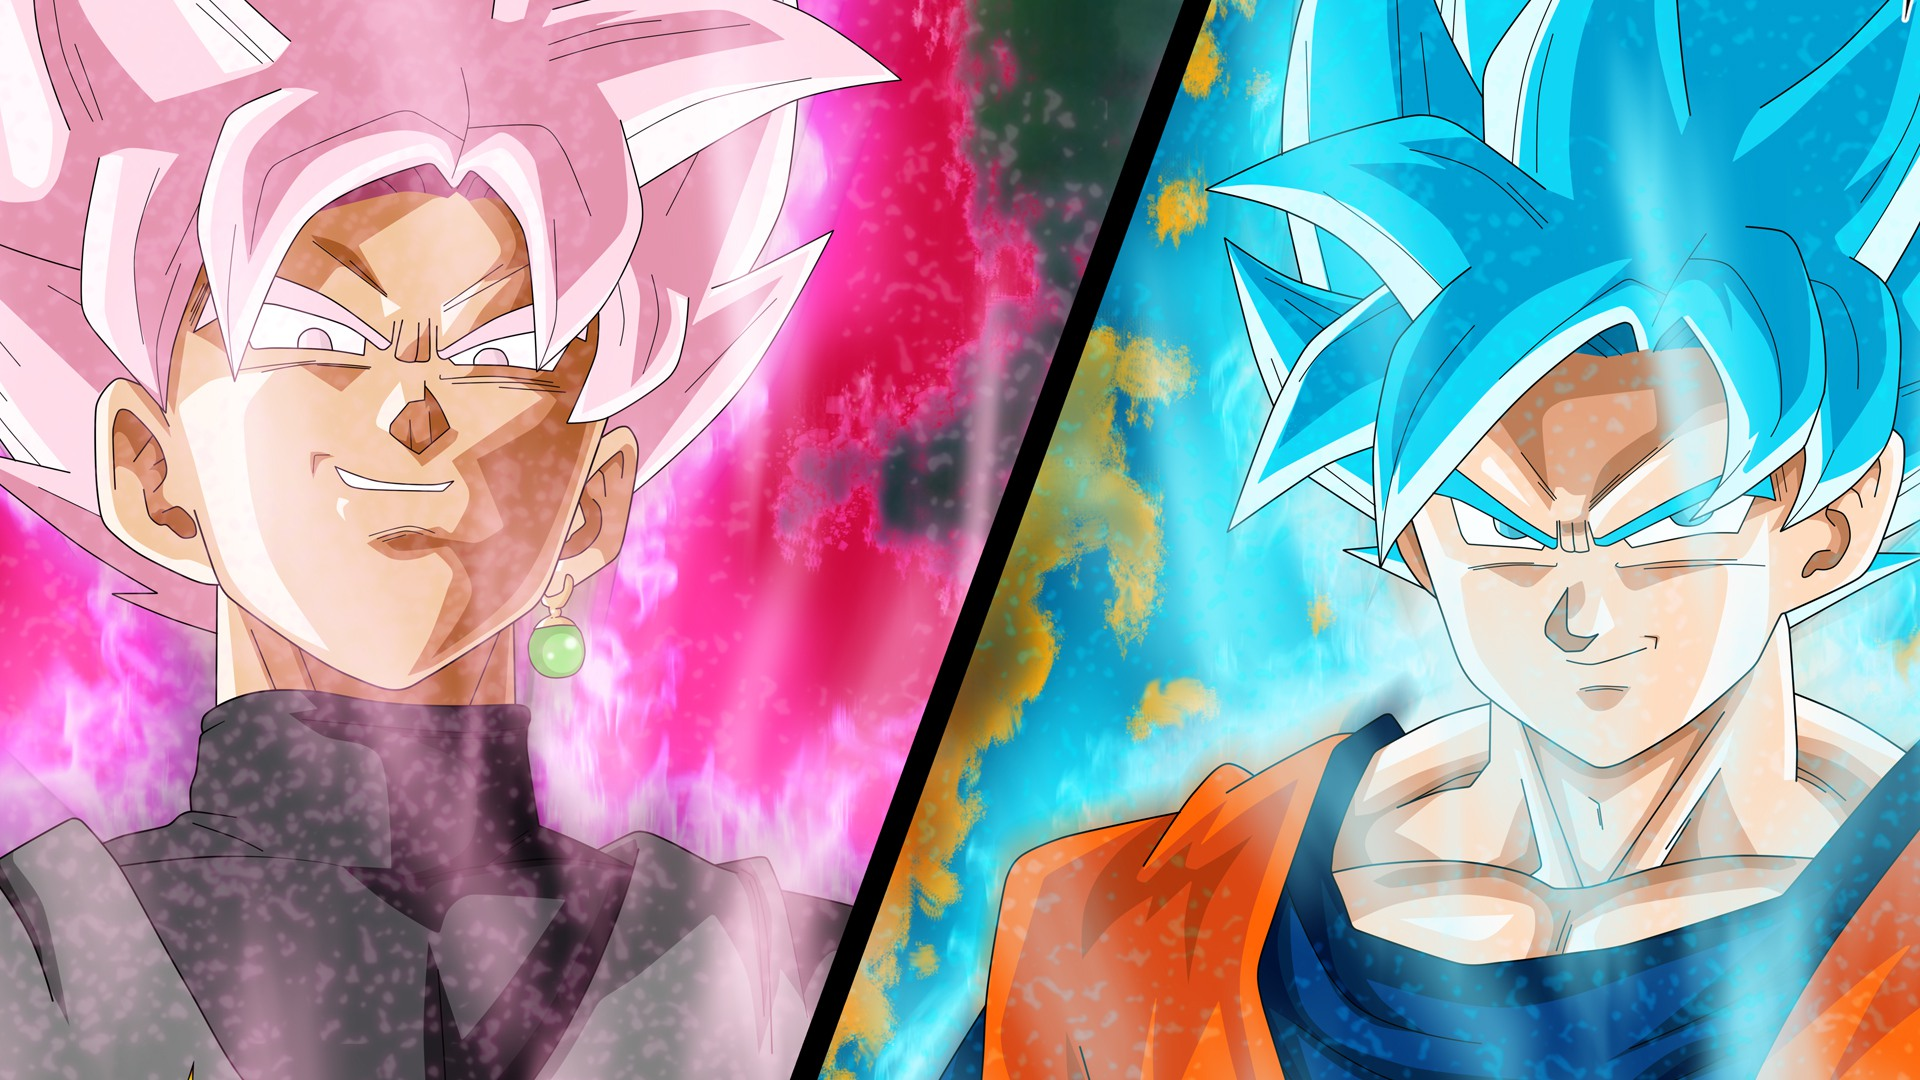 Dragon Ball Super Goku And Black Goku Hd Wallpaper